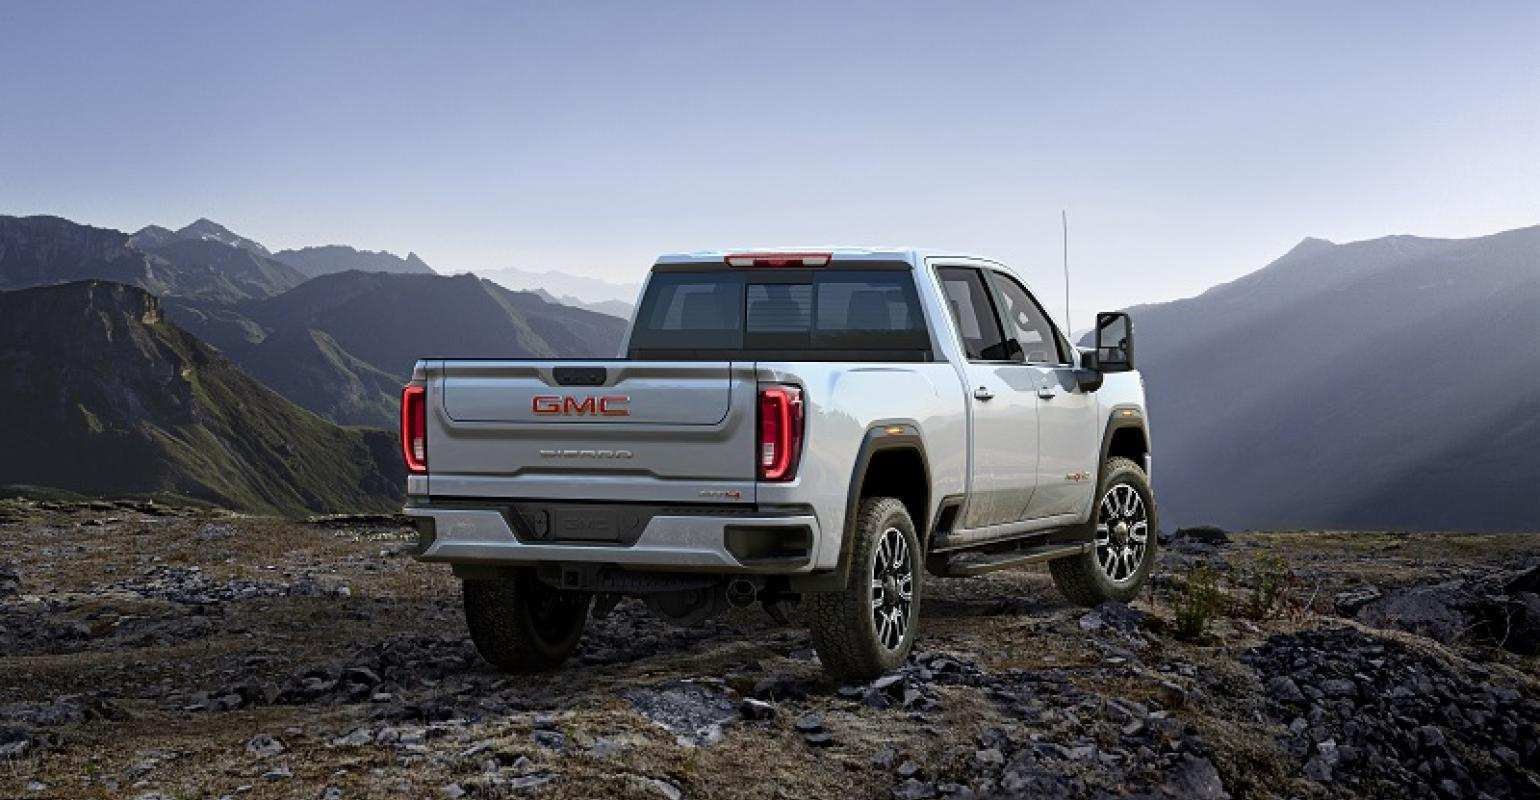 94 A 2020 GMC Sierra 2500Hd Review And Release Date